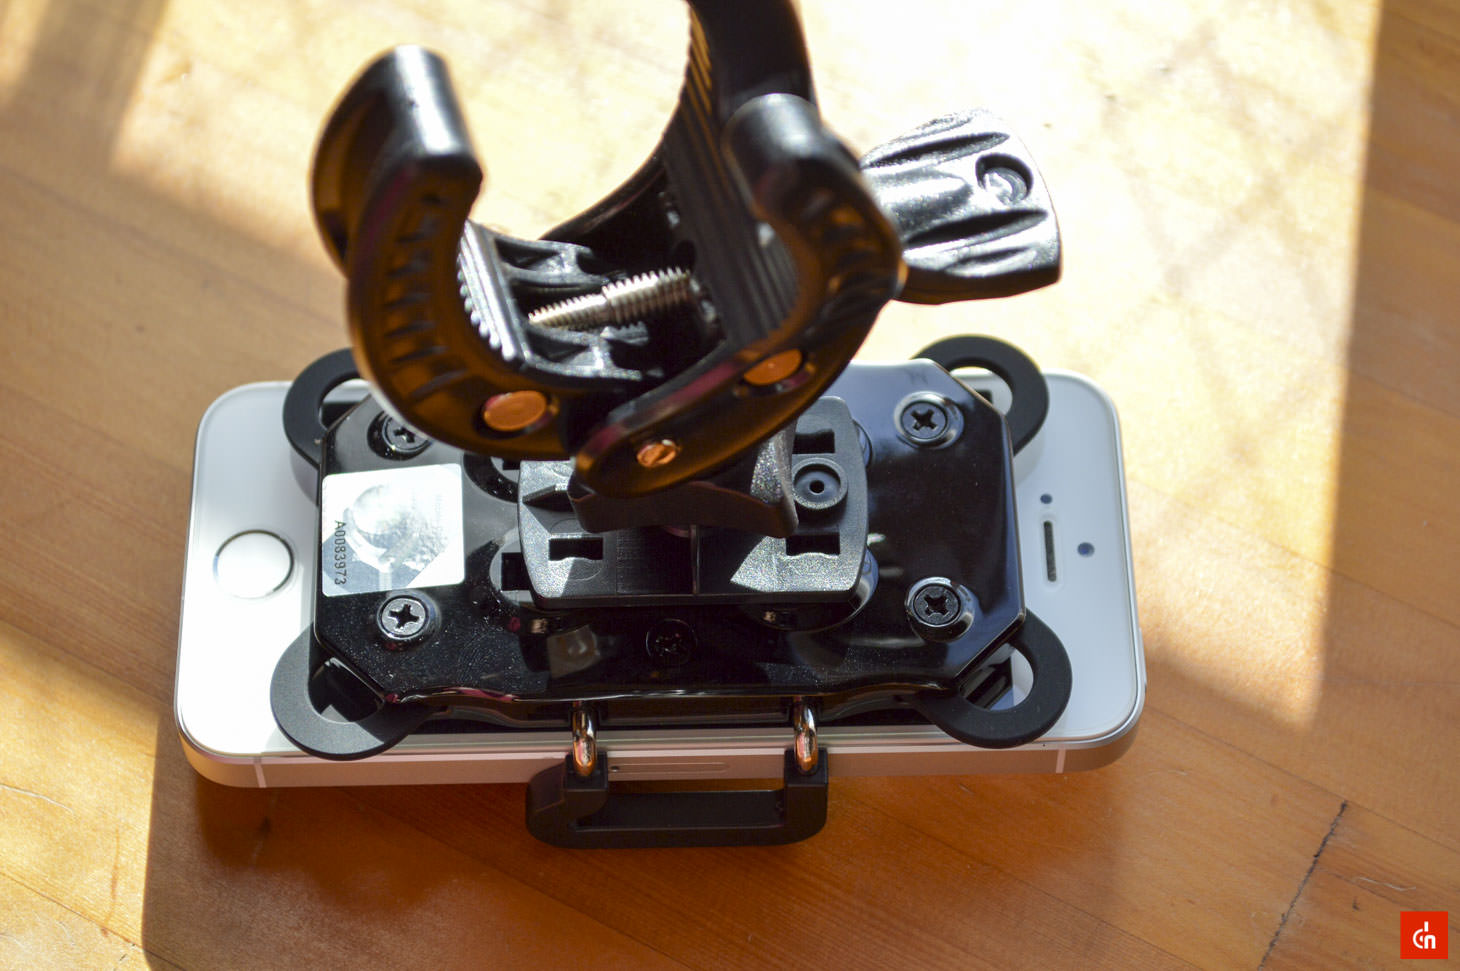 009_20161001_potensic-cycle-holder